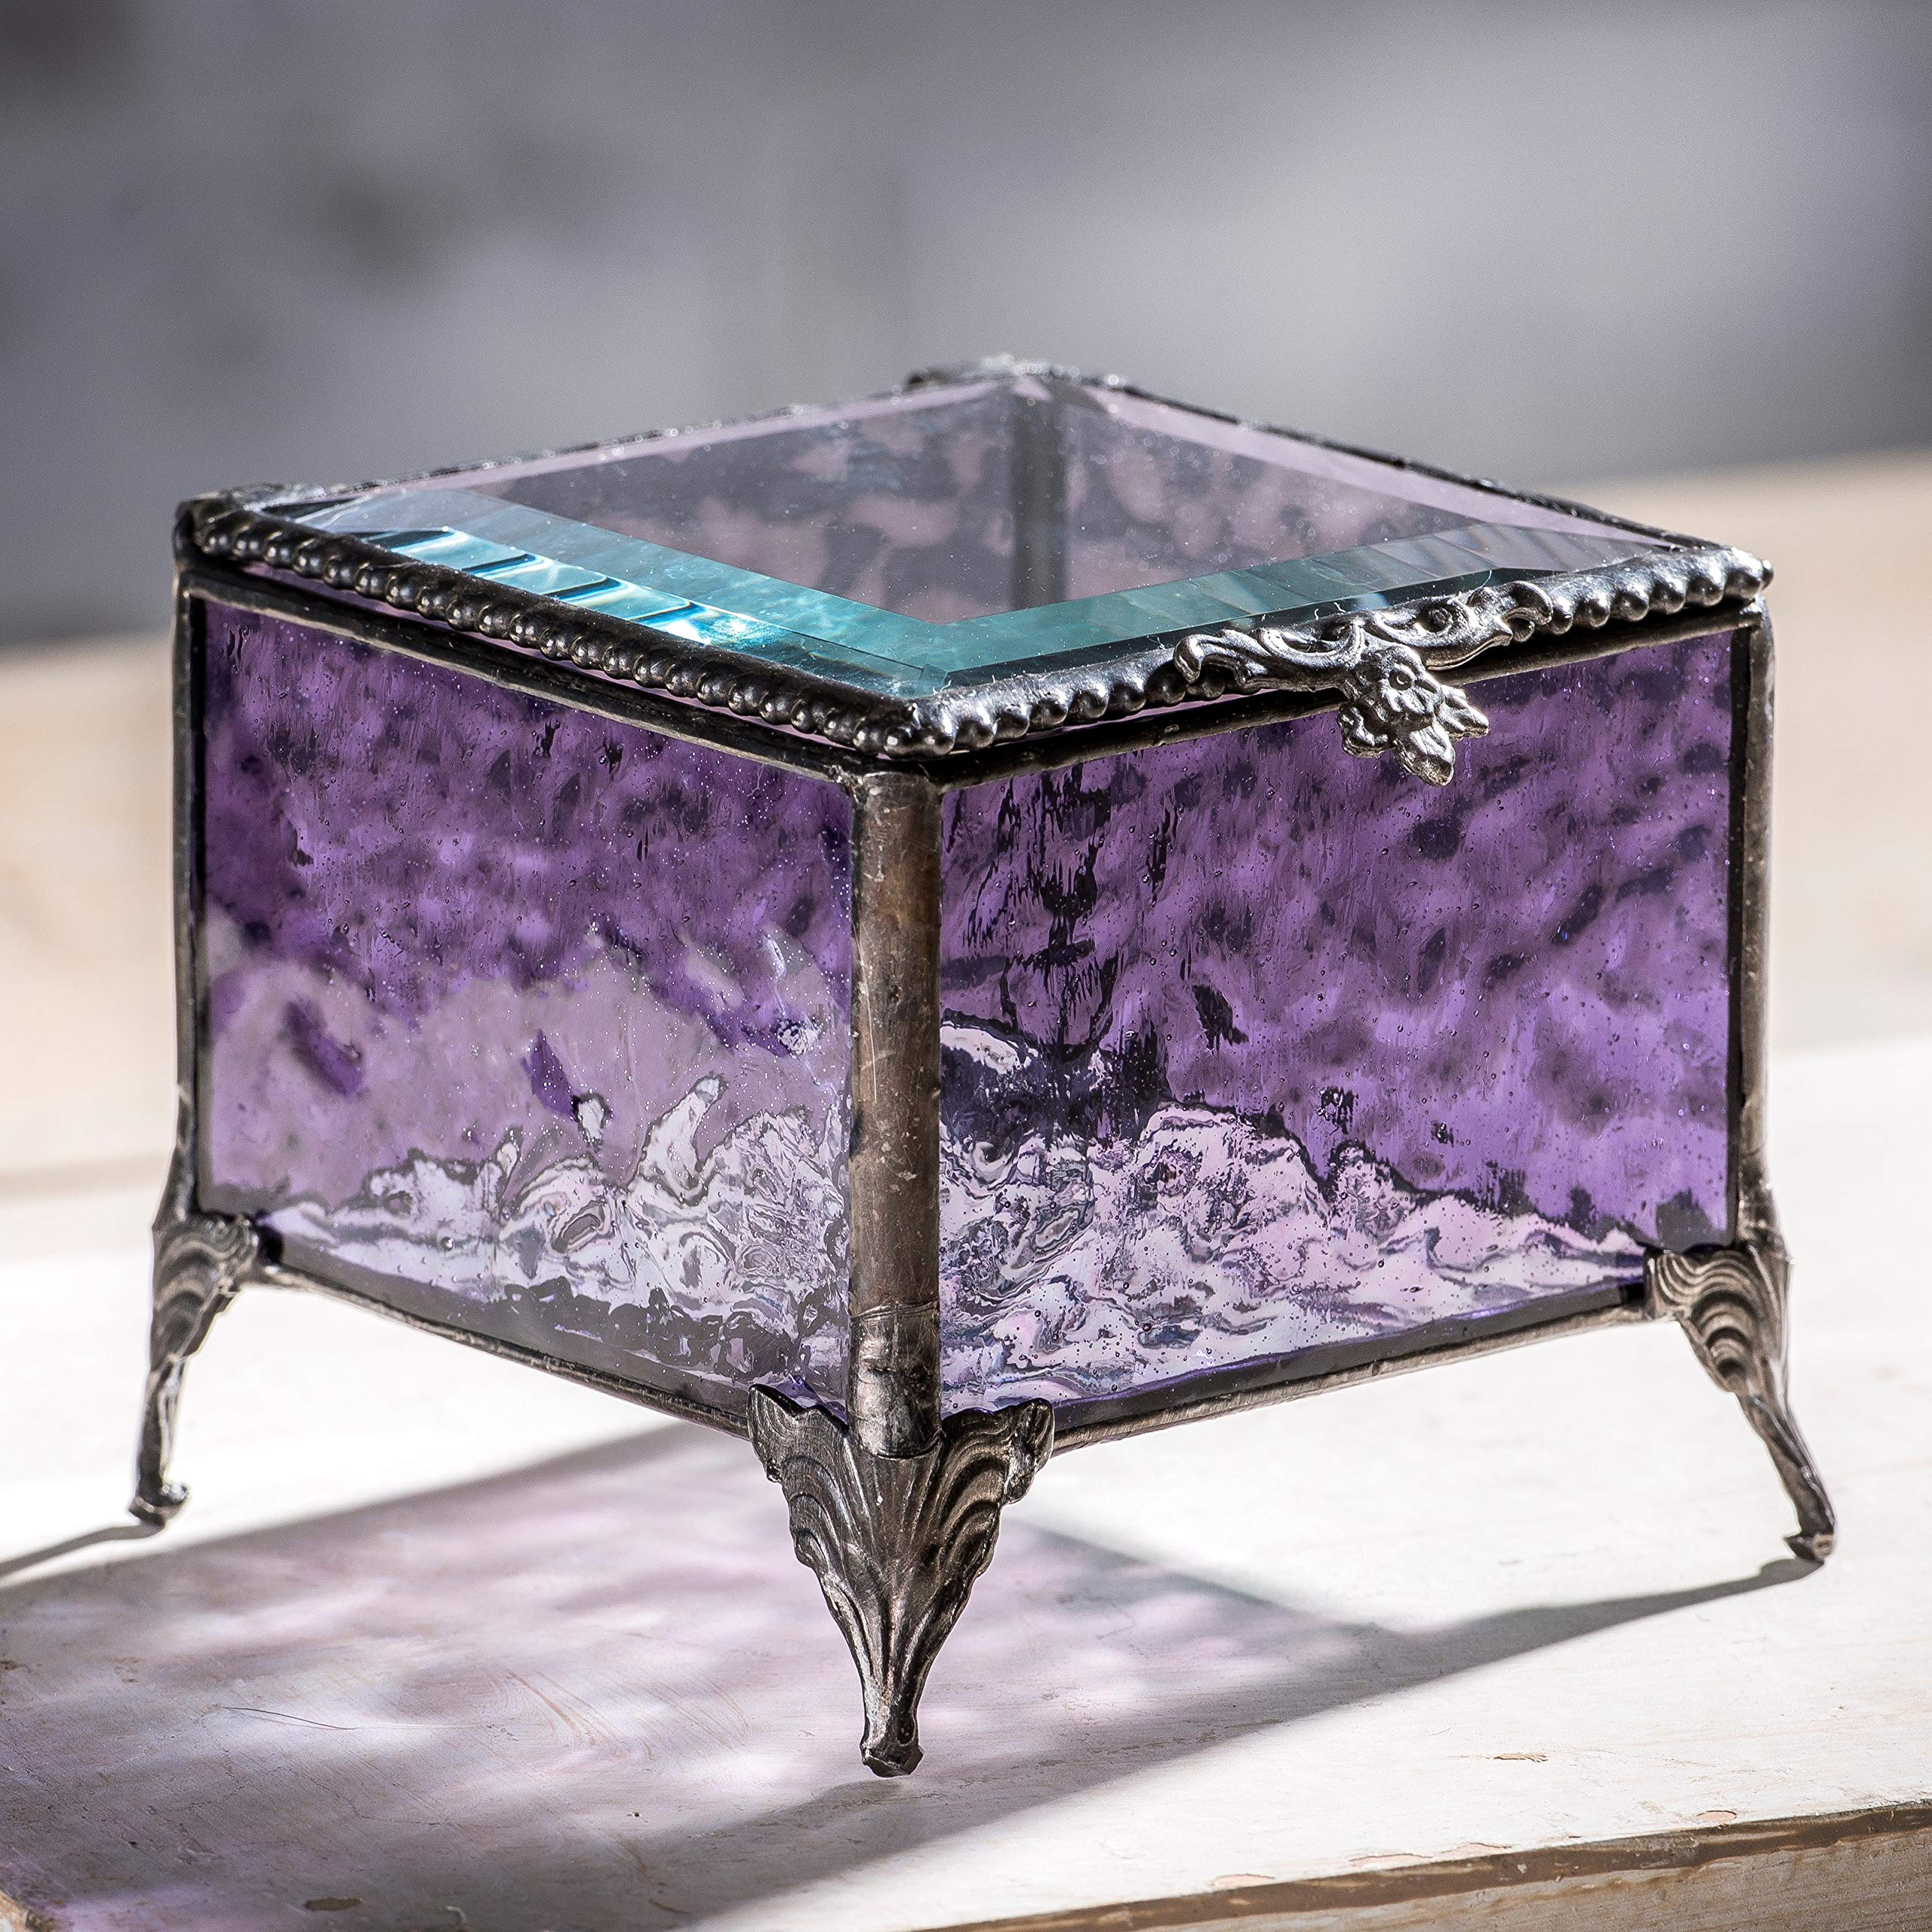 J Devlin Box 836 Amethyst Glass Box Decorative Vintage Keepsake Trinket Jewelry Box Gift by J Devlin Glass Art (Image #2)